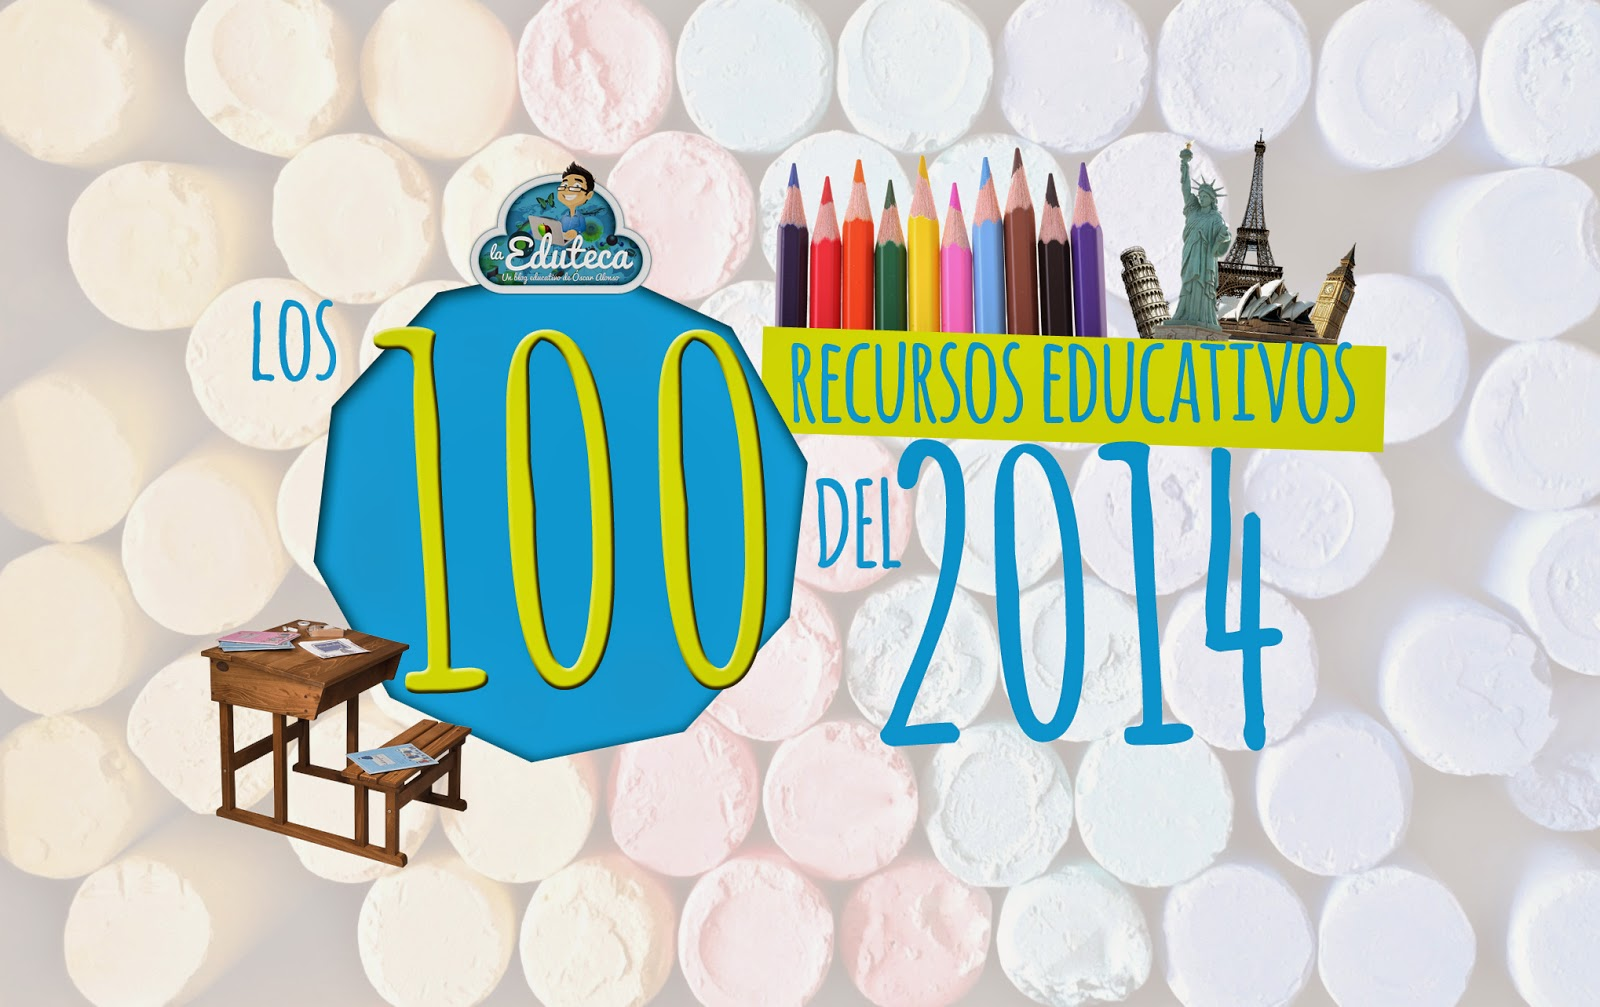 RECURSOS EDUCATIVOS DE 2014